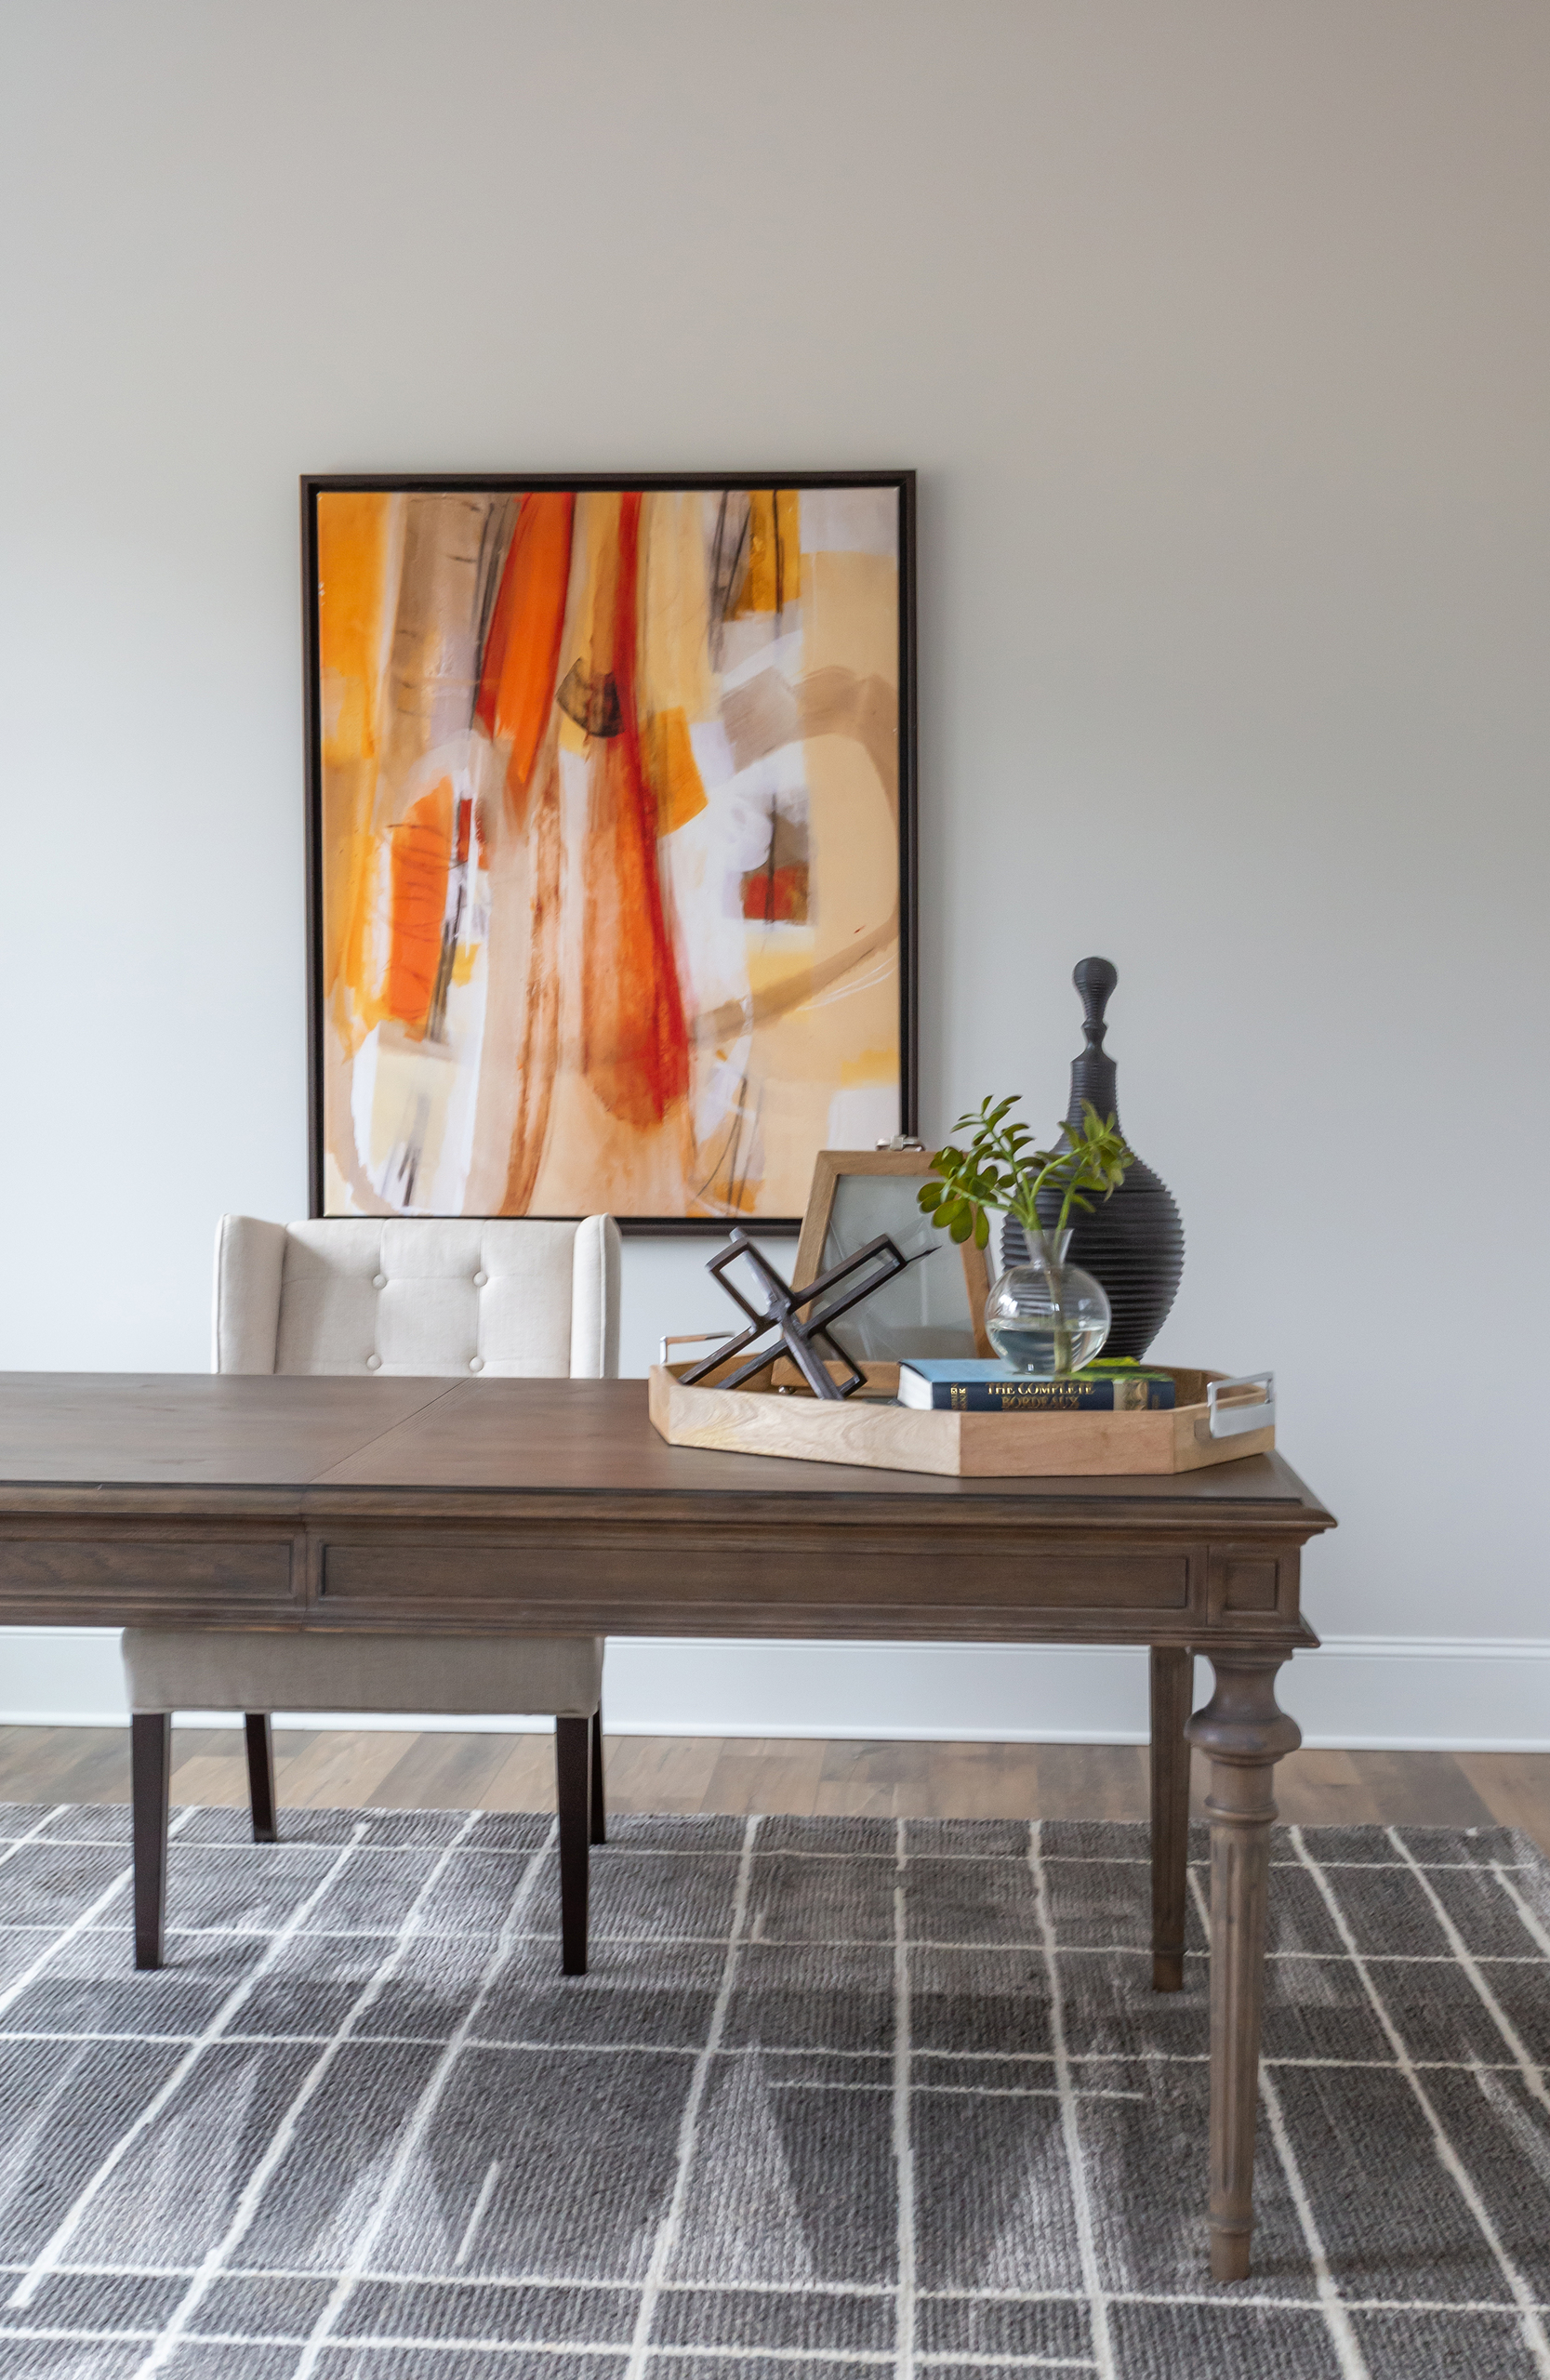 Design Tips for Your Home Office